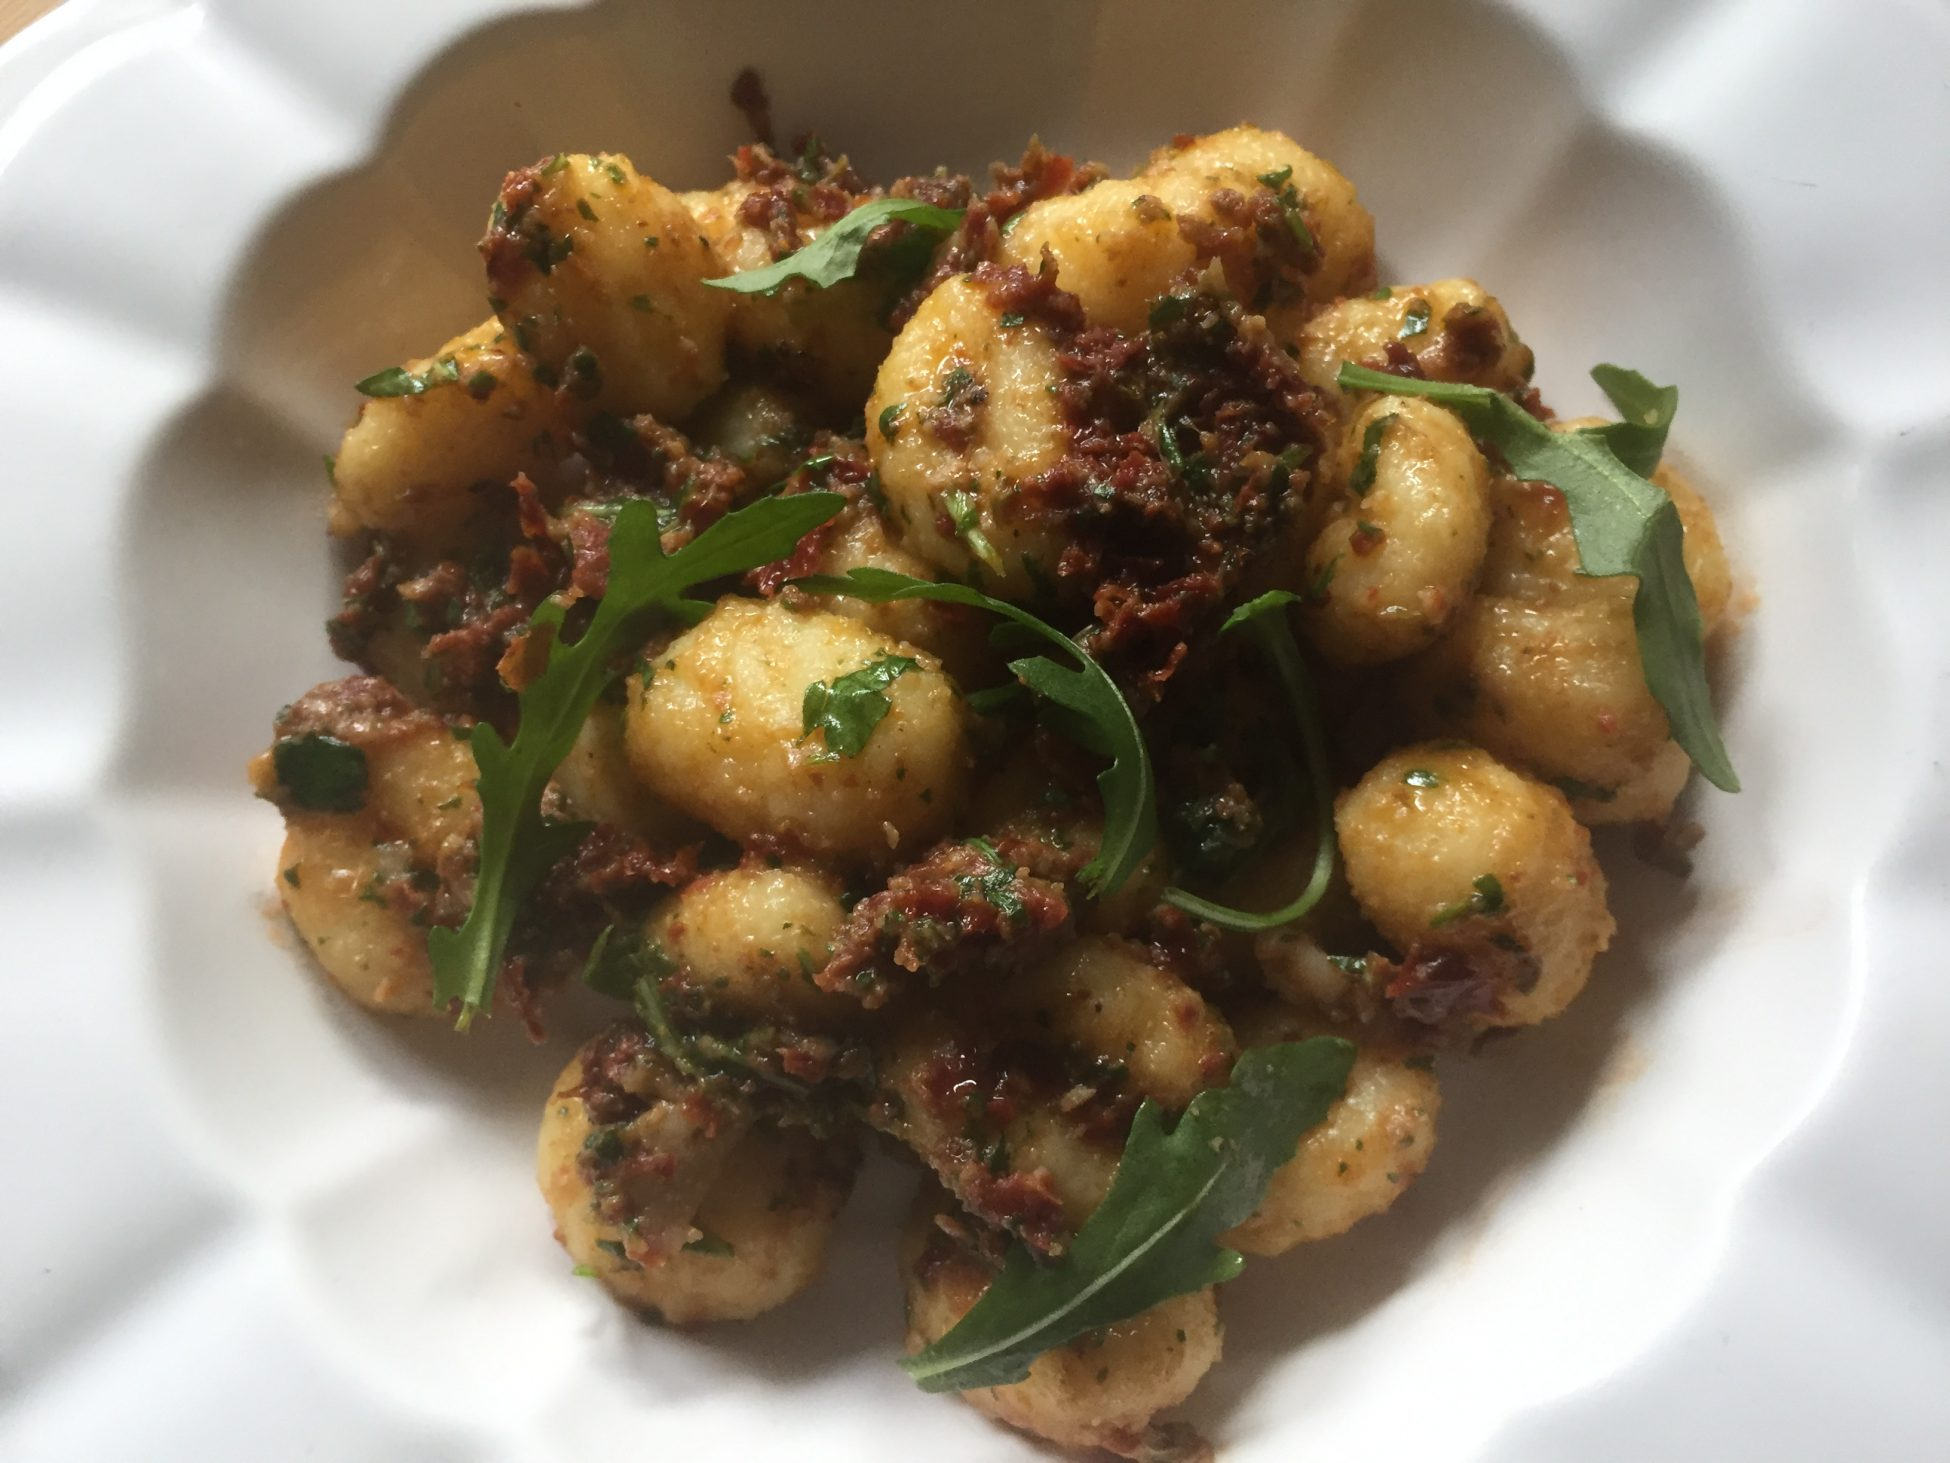 Potatoes gnocchi with olives, sundried tomatoes & rocket pesto